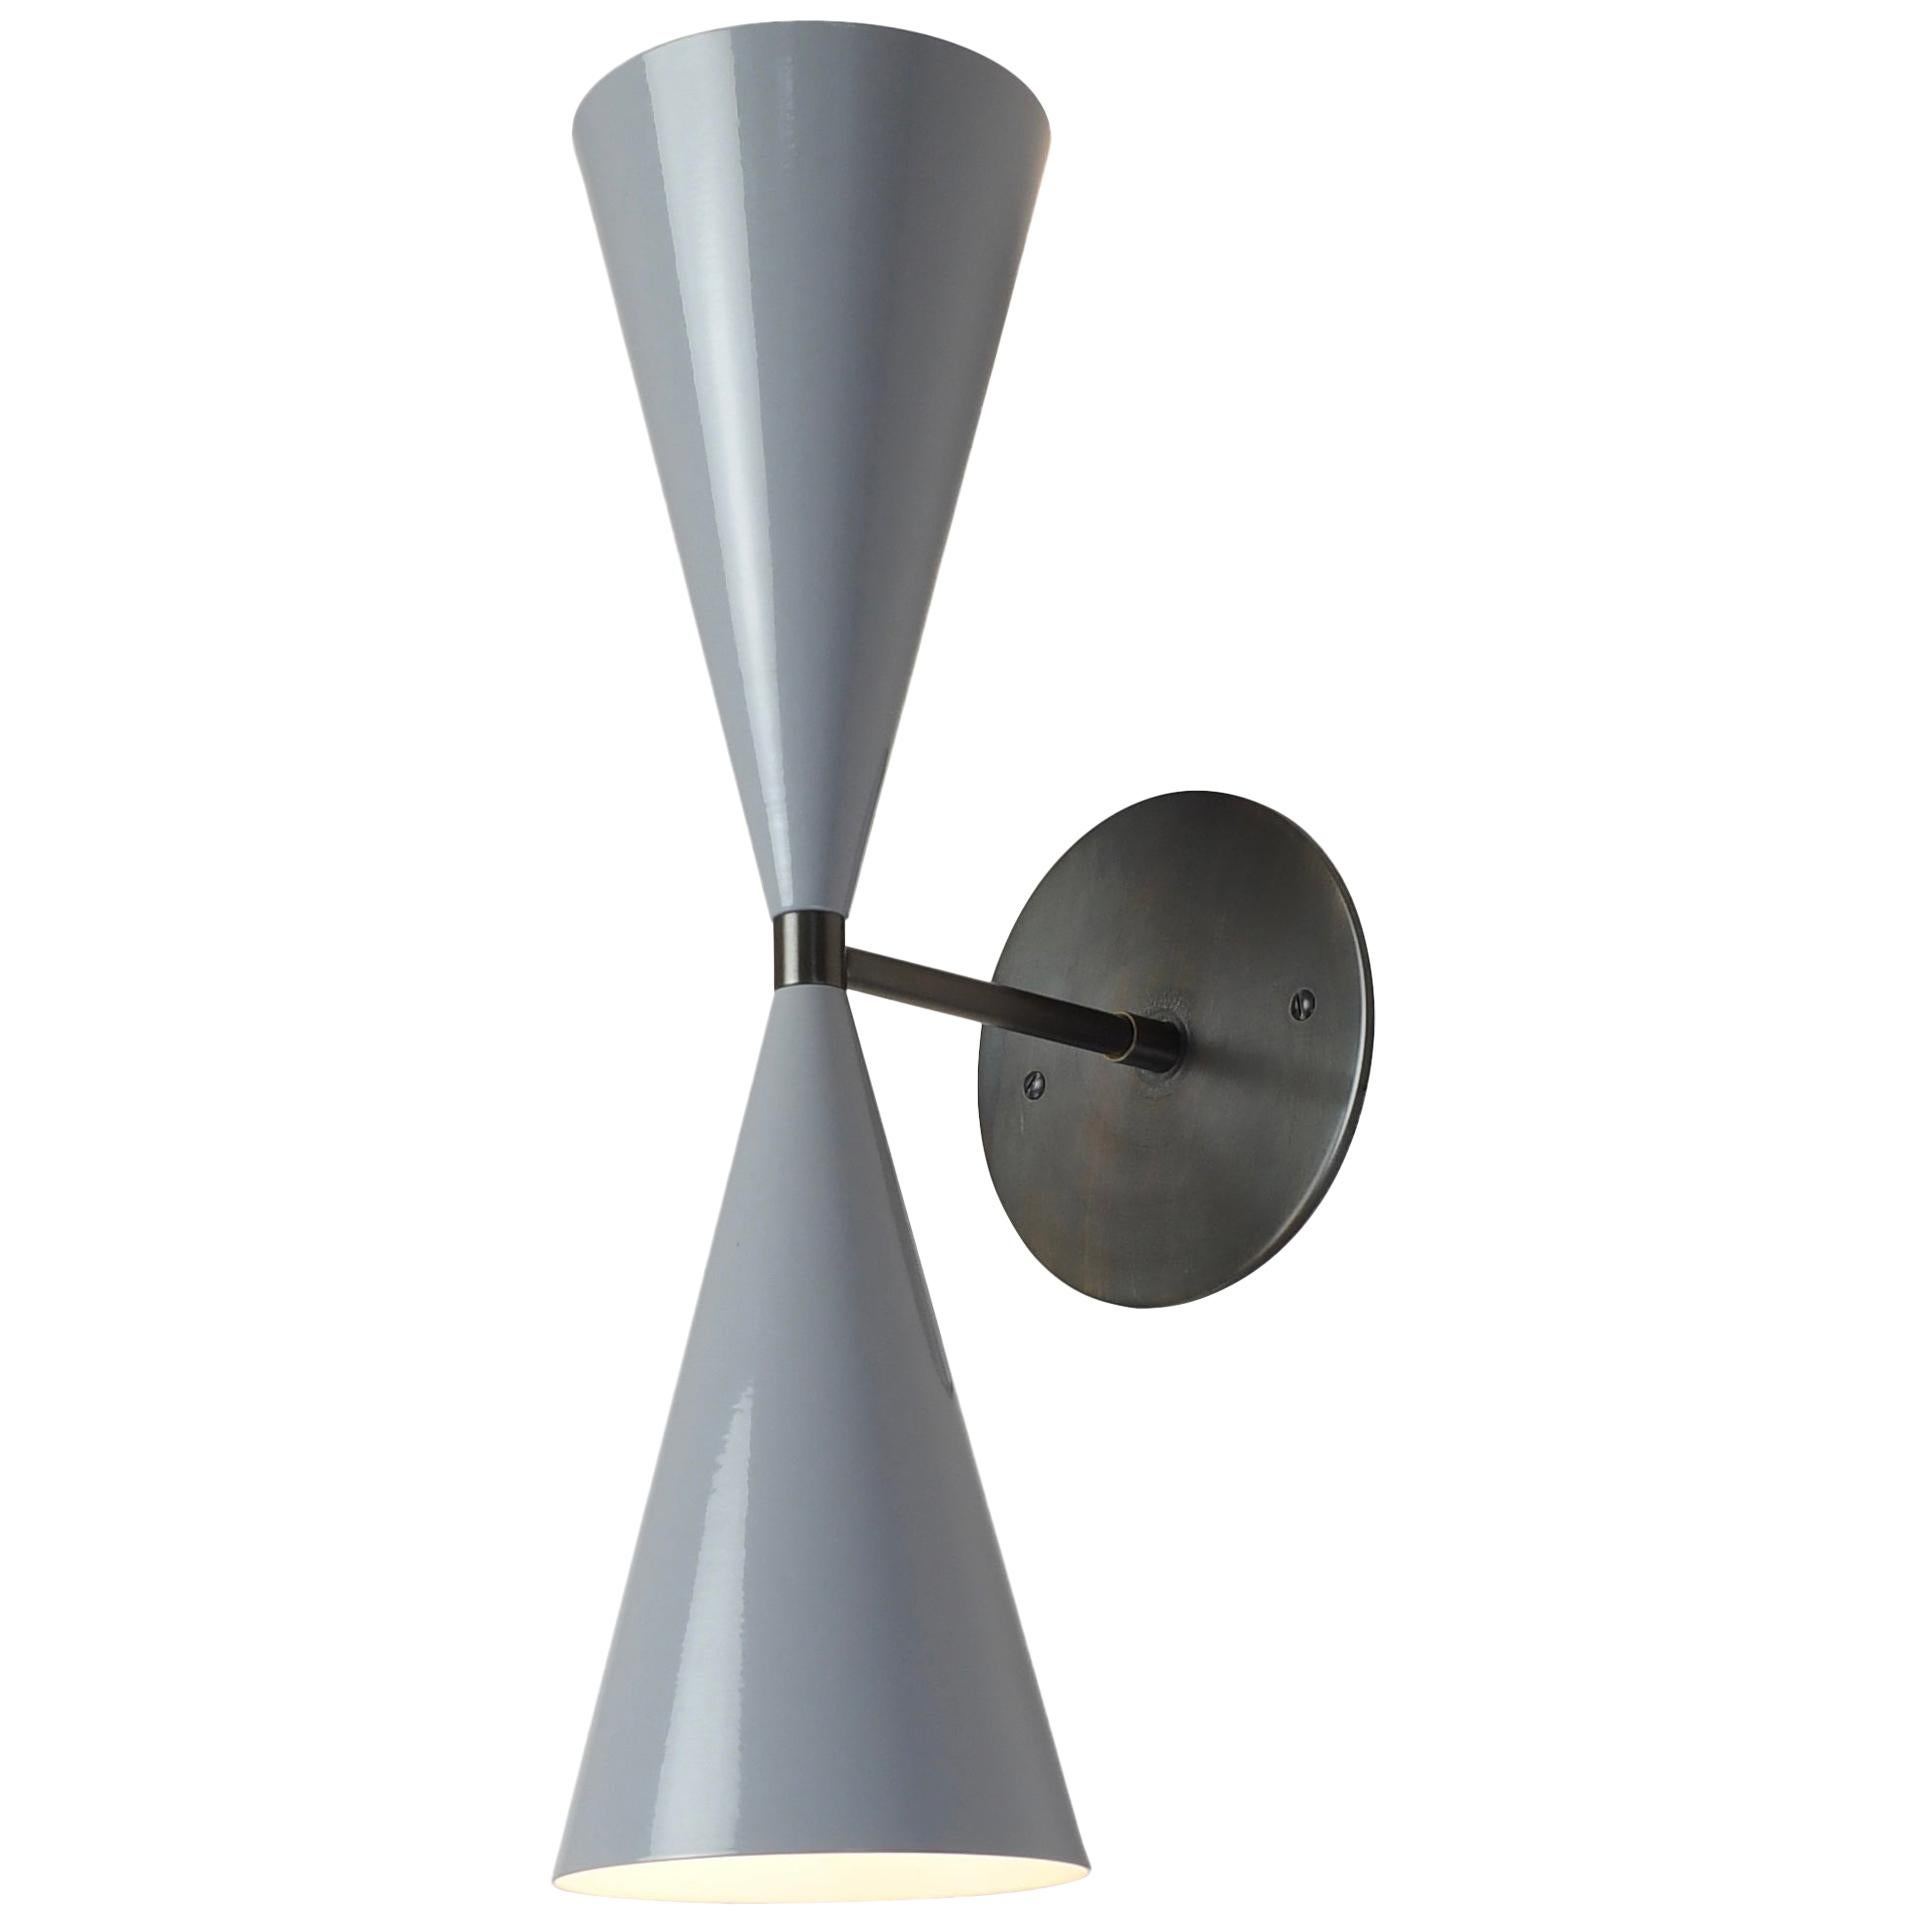 Tuxedo Wall Sconce in Oil-Rubbed Bronze and Gray Enamel, Blueprint Lighting